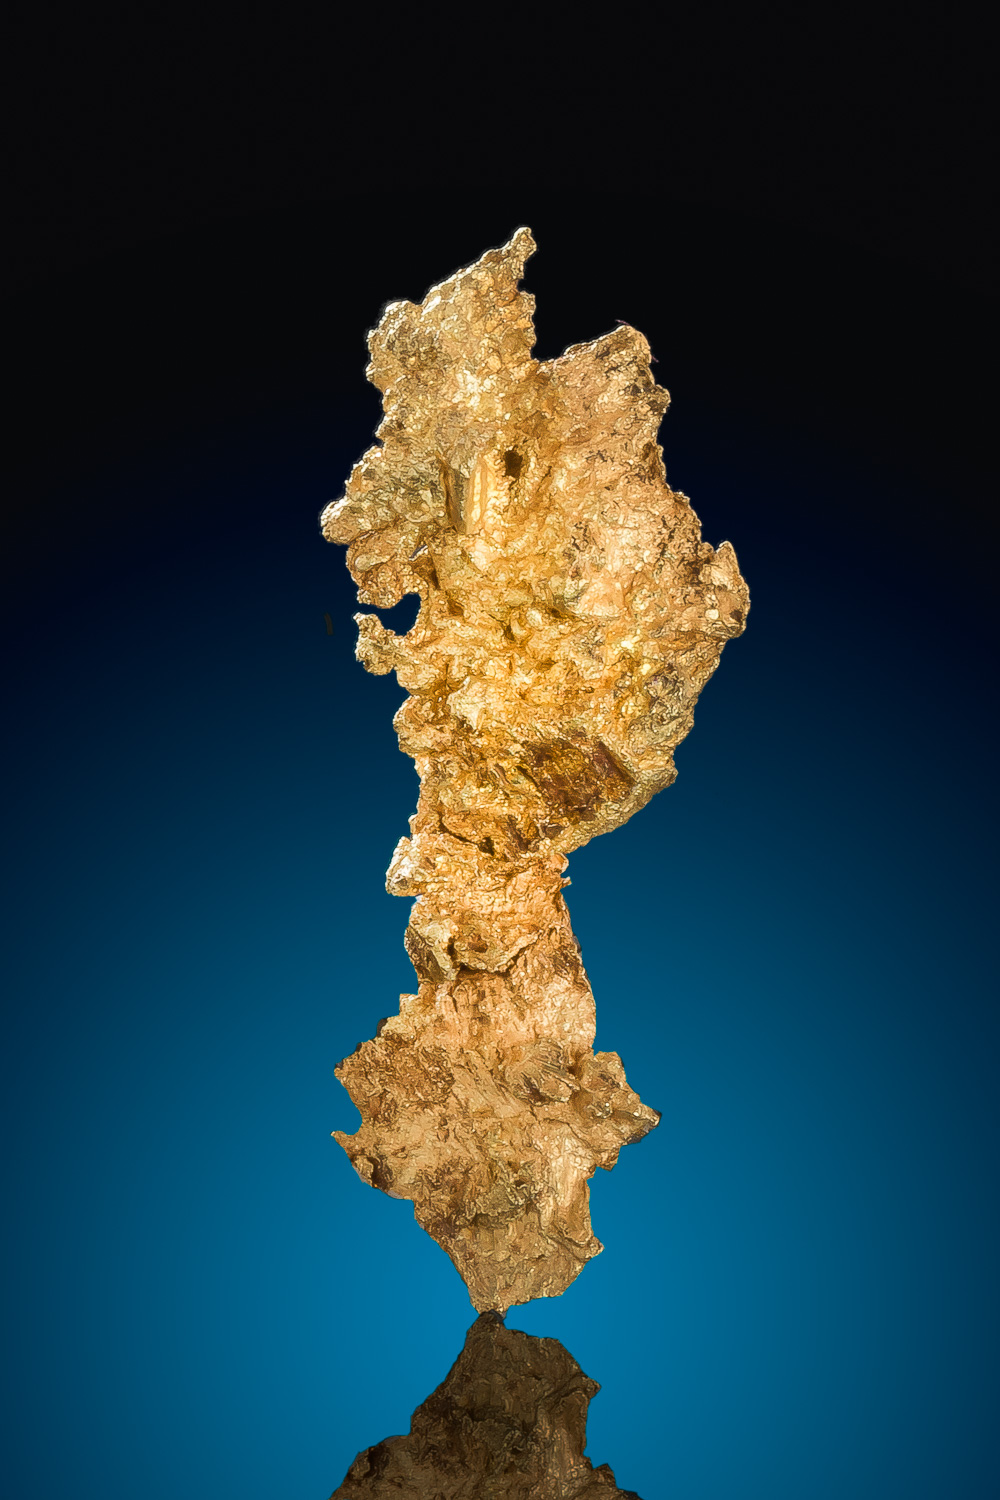 Long and Tappered Crystalline Gold Nugget - Eagles Nest Mine